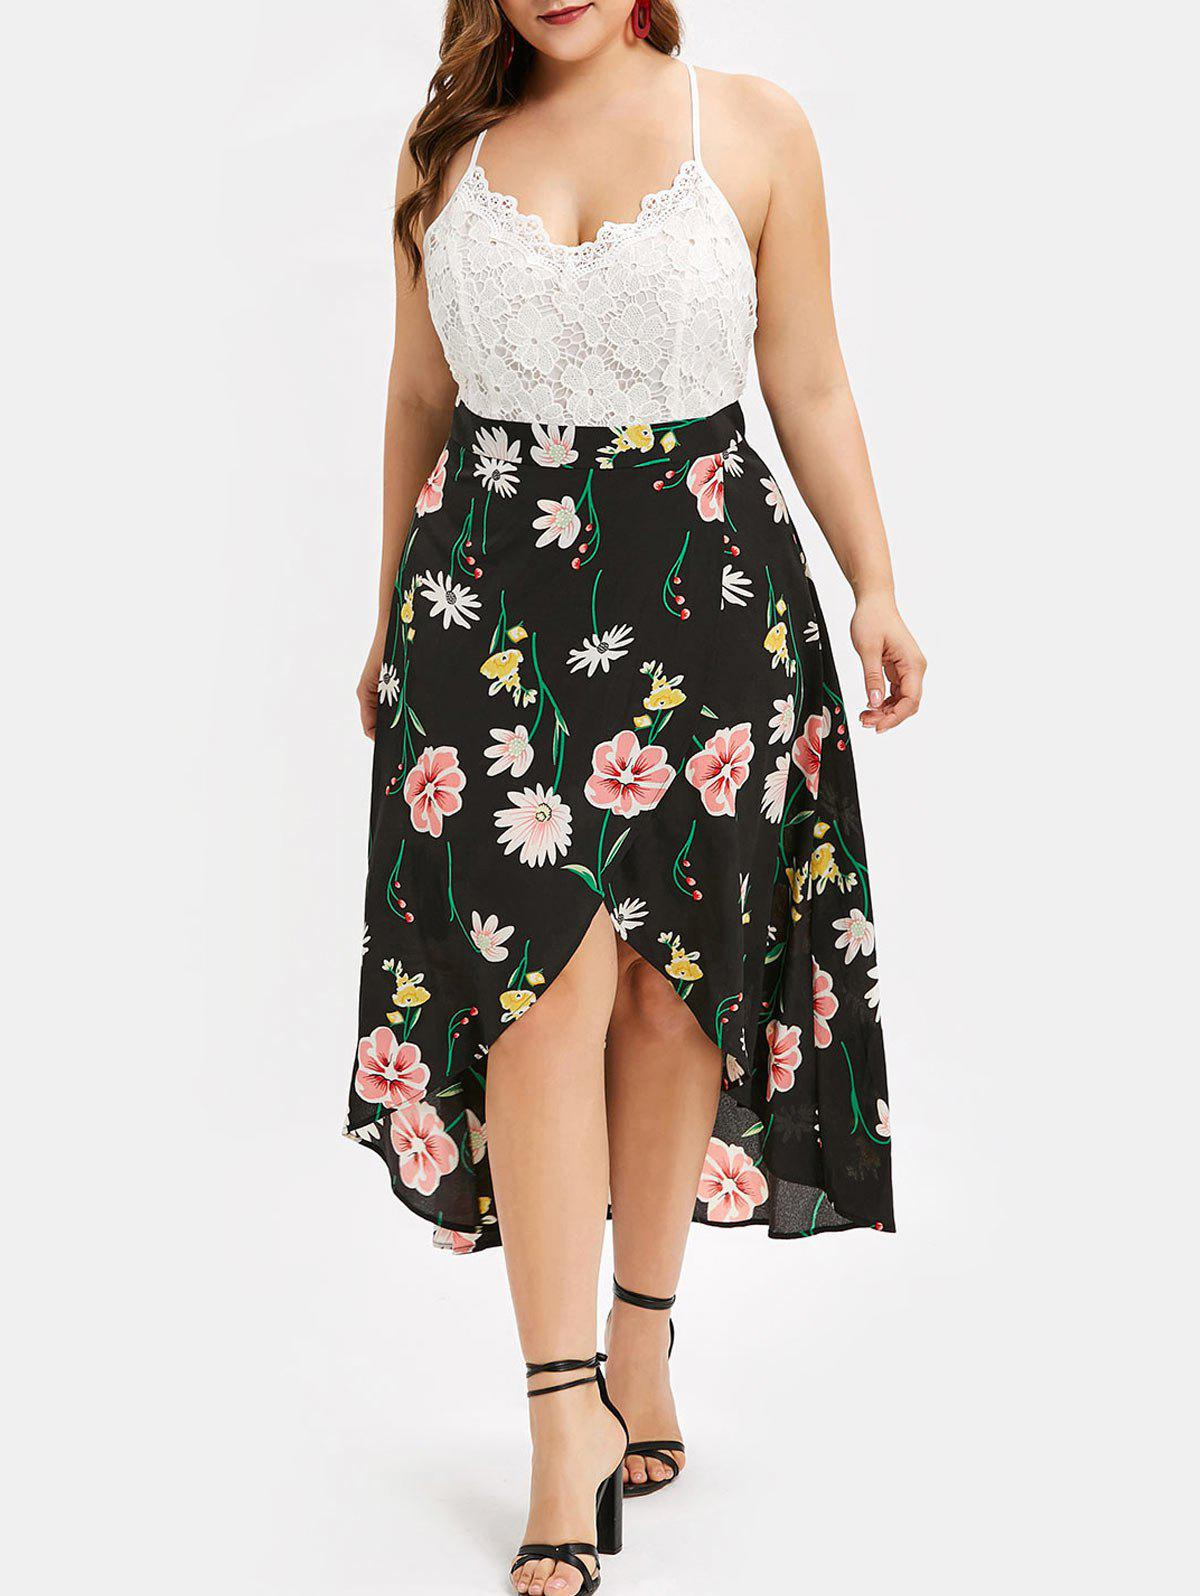 47% OFF] Lace Panel High Low Floral Plus Size Midi Dress | Rosegal